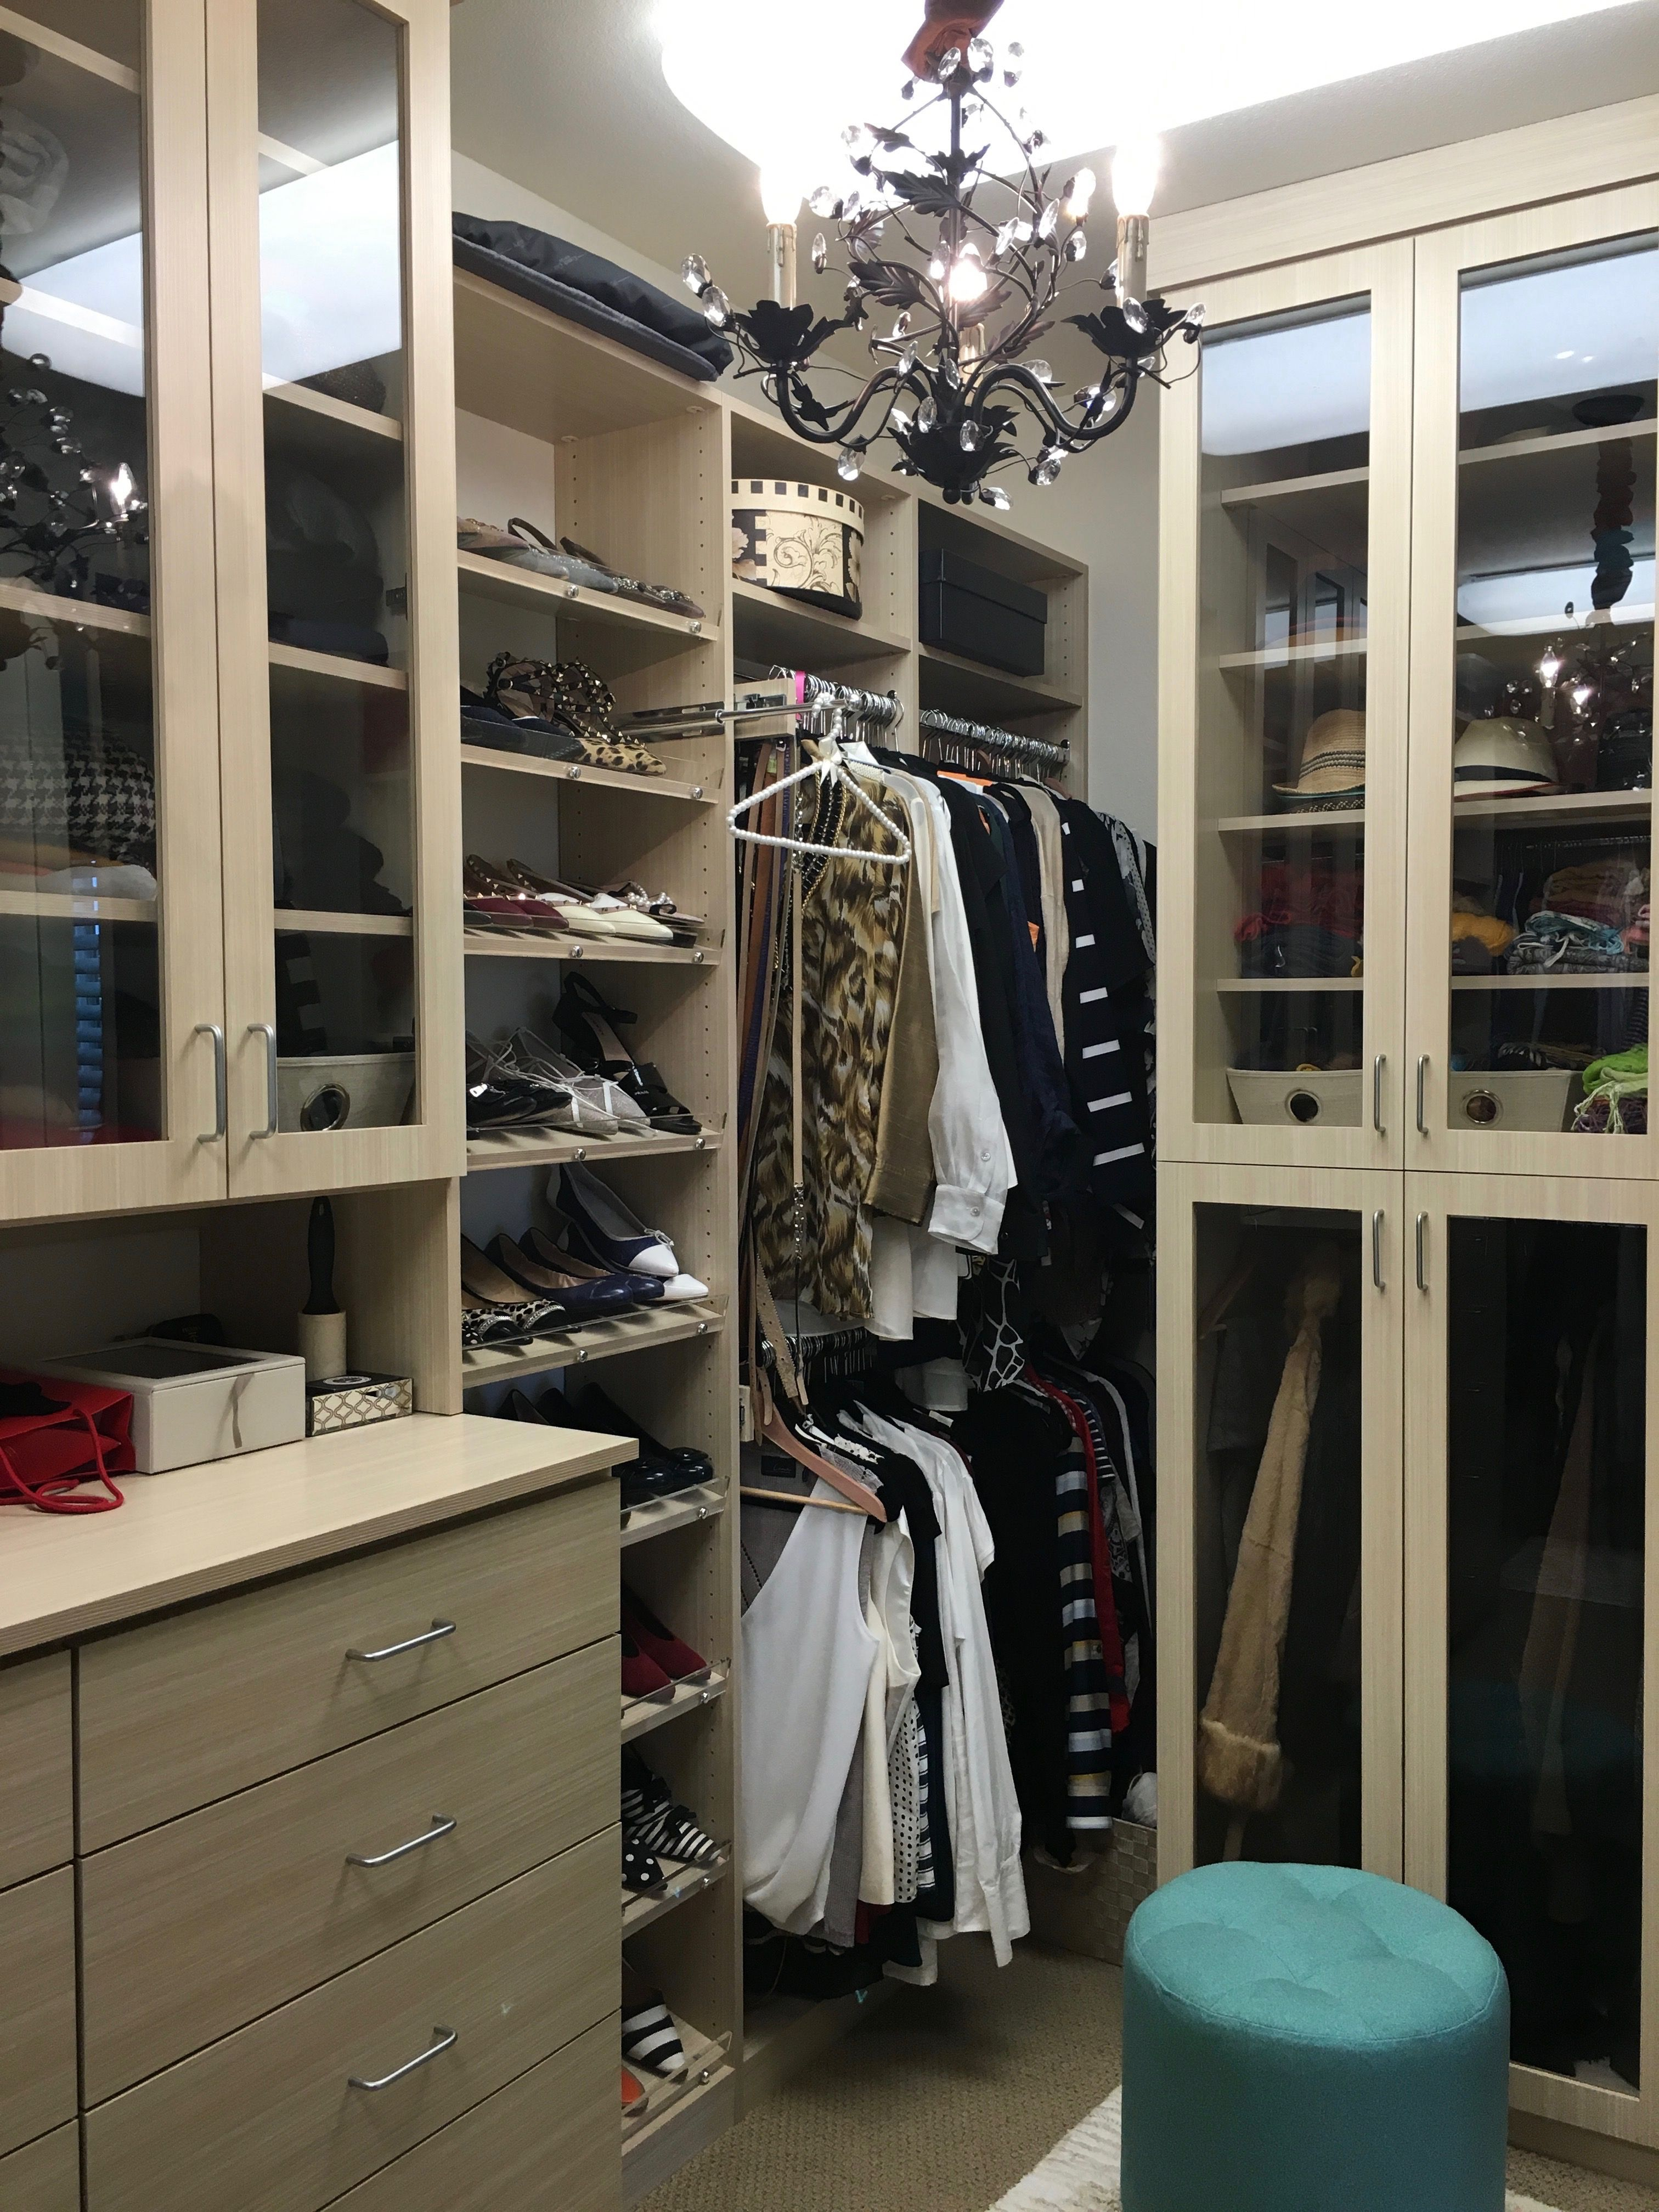 mount in cedar own custom system jacksonville diy x locations yourself organizer your near green cost design software floor depot closets ideas build drawers nyc home download plans hacks online built budget free closet crafthubs do model me ikea organization aromatic it full california